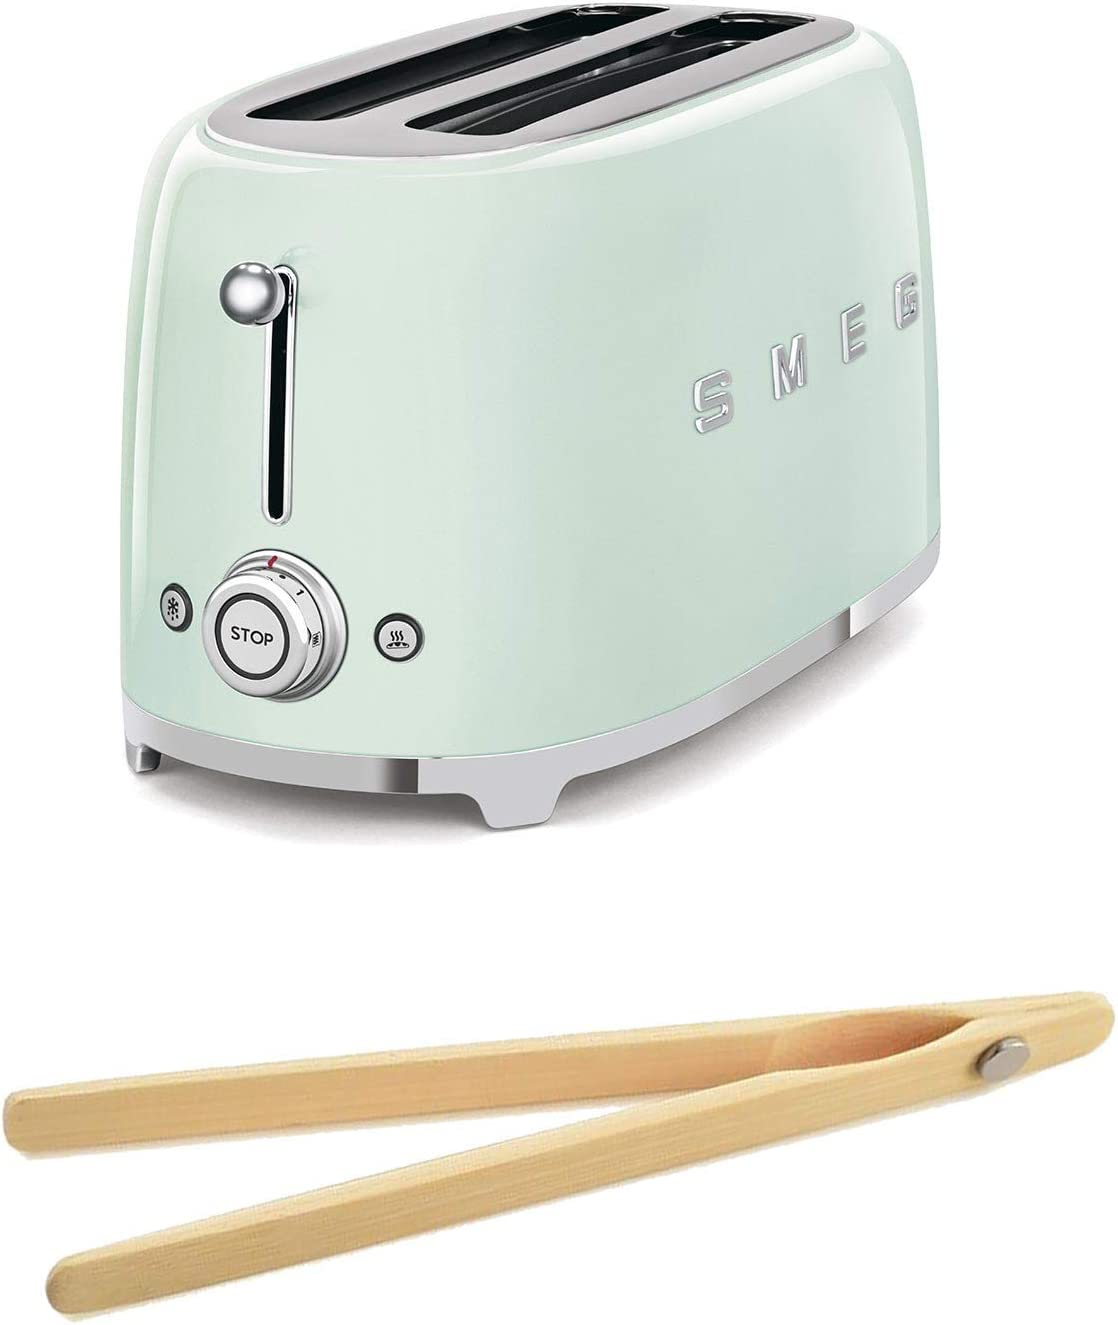 Smeg TSF02PGUS 50's Retro Style Toaster Bundle with Norpro Bamboo Tongs - (Pastel Green) 4 Slice